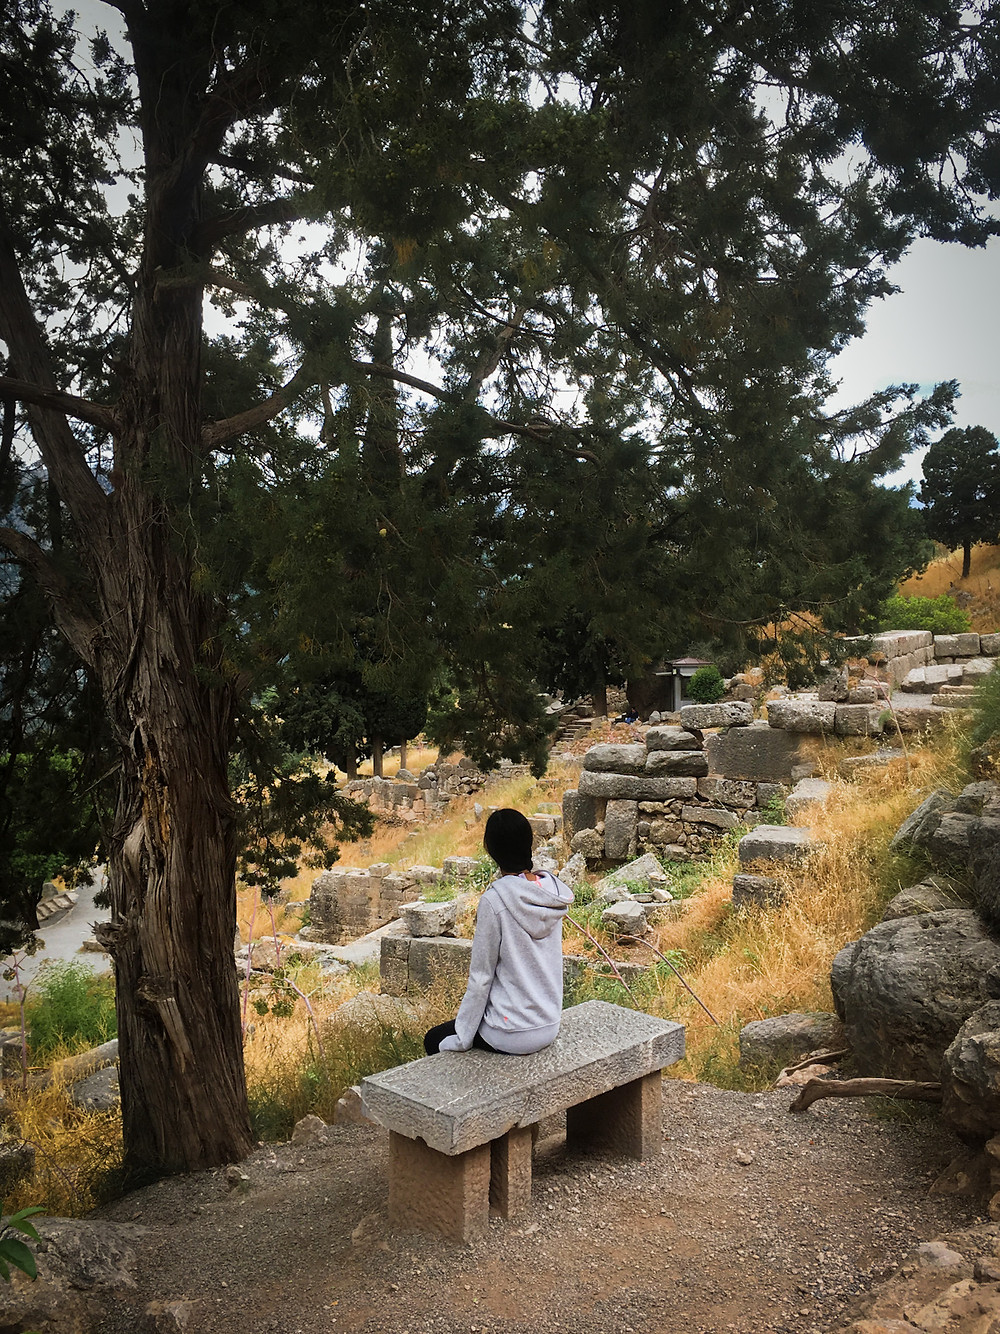 Eryn sits on a bench beneath a tree amid the archaeological site in Delphi, Greece